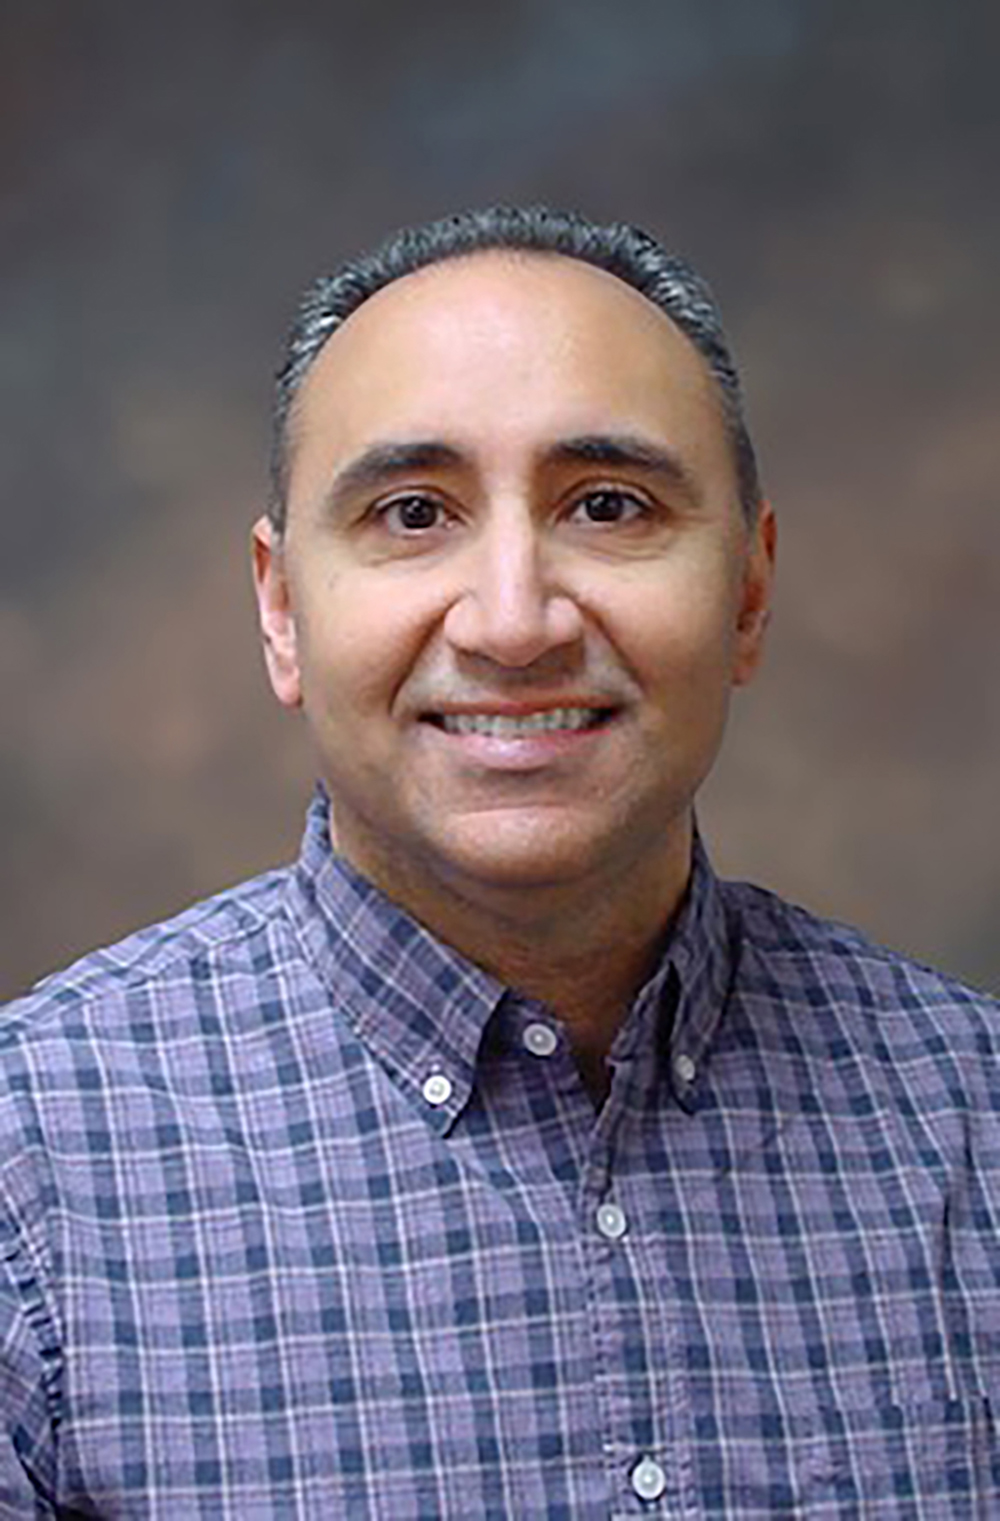 ►The Watson Clinic added Dr. Joachim A. Benitez to its roster of physicians.